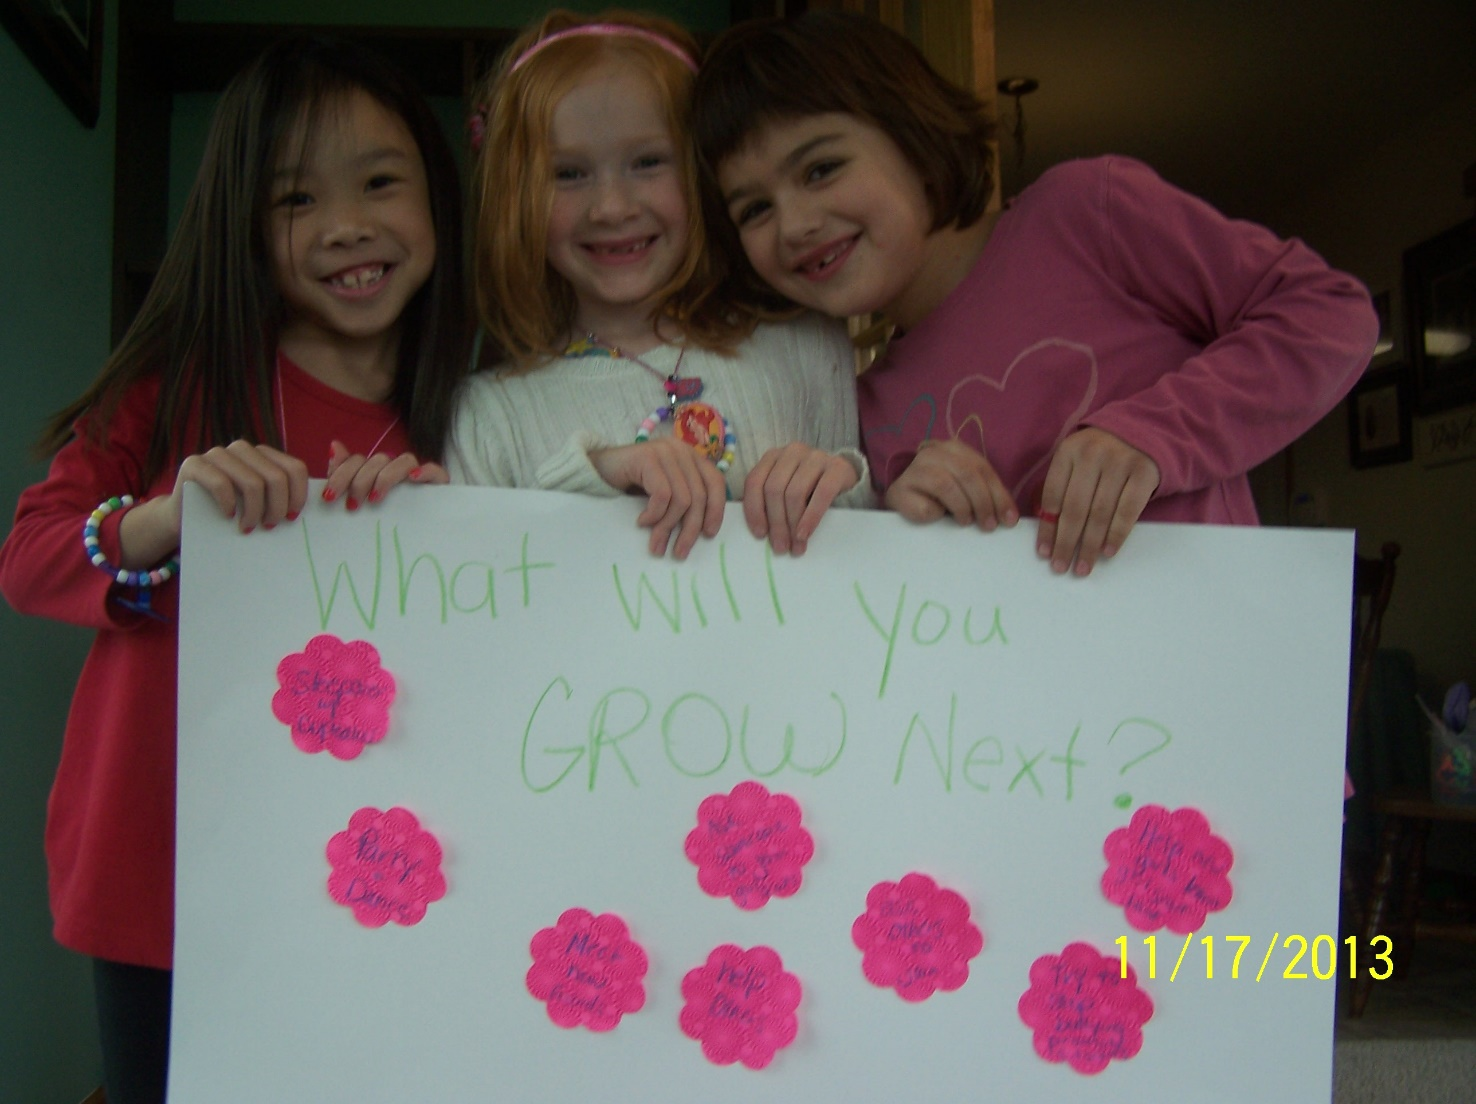 welcome to the flower garden journey in-a-day - scout leader 411 blog